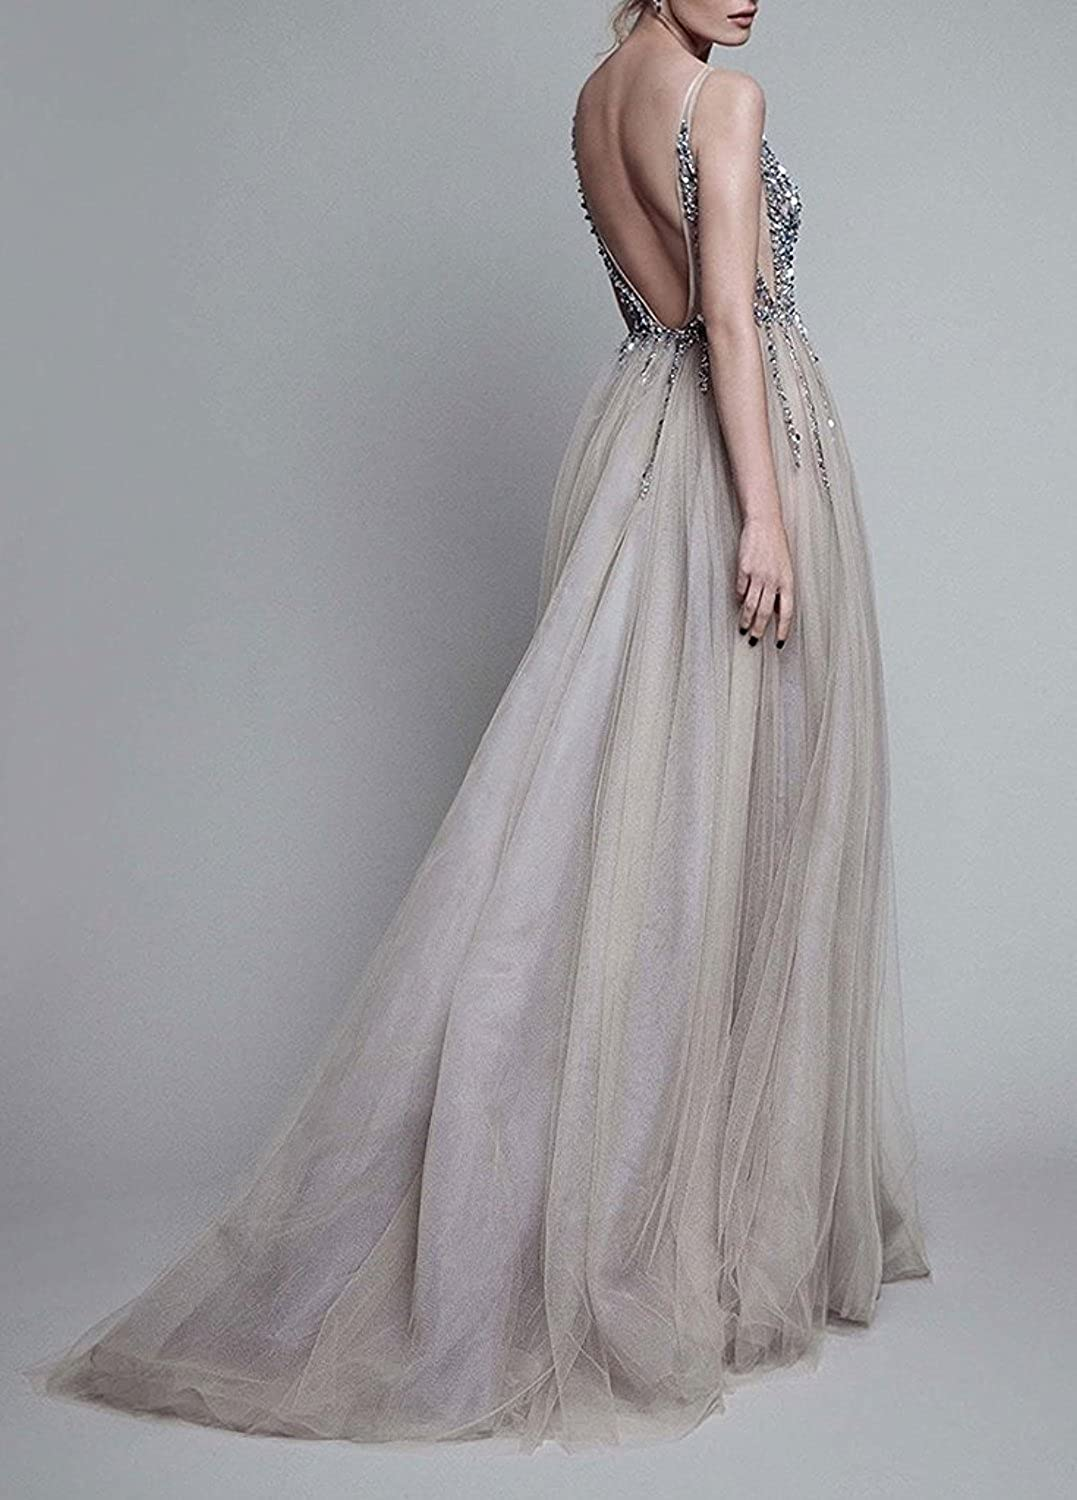 Amazon.com  Prom Dresses Sexy Deep V Neck Sequins Tulle and Lace Sex High  Split Long Evening Dresses  Clothing 56b936ca6